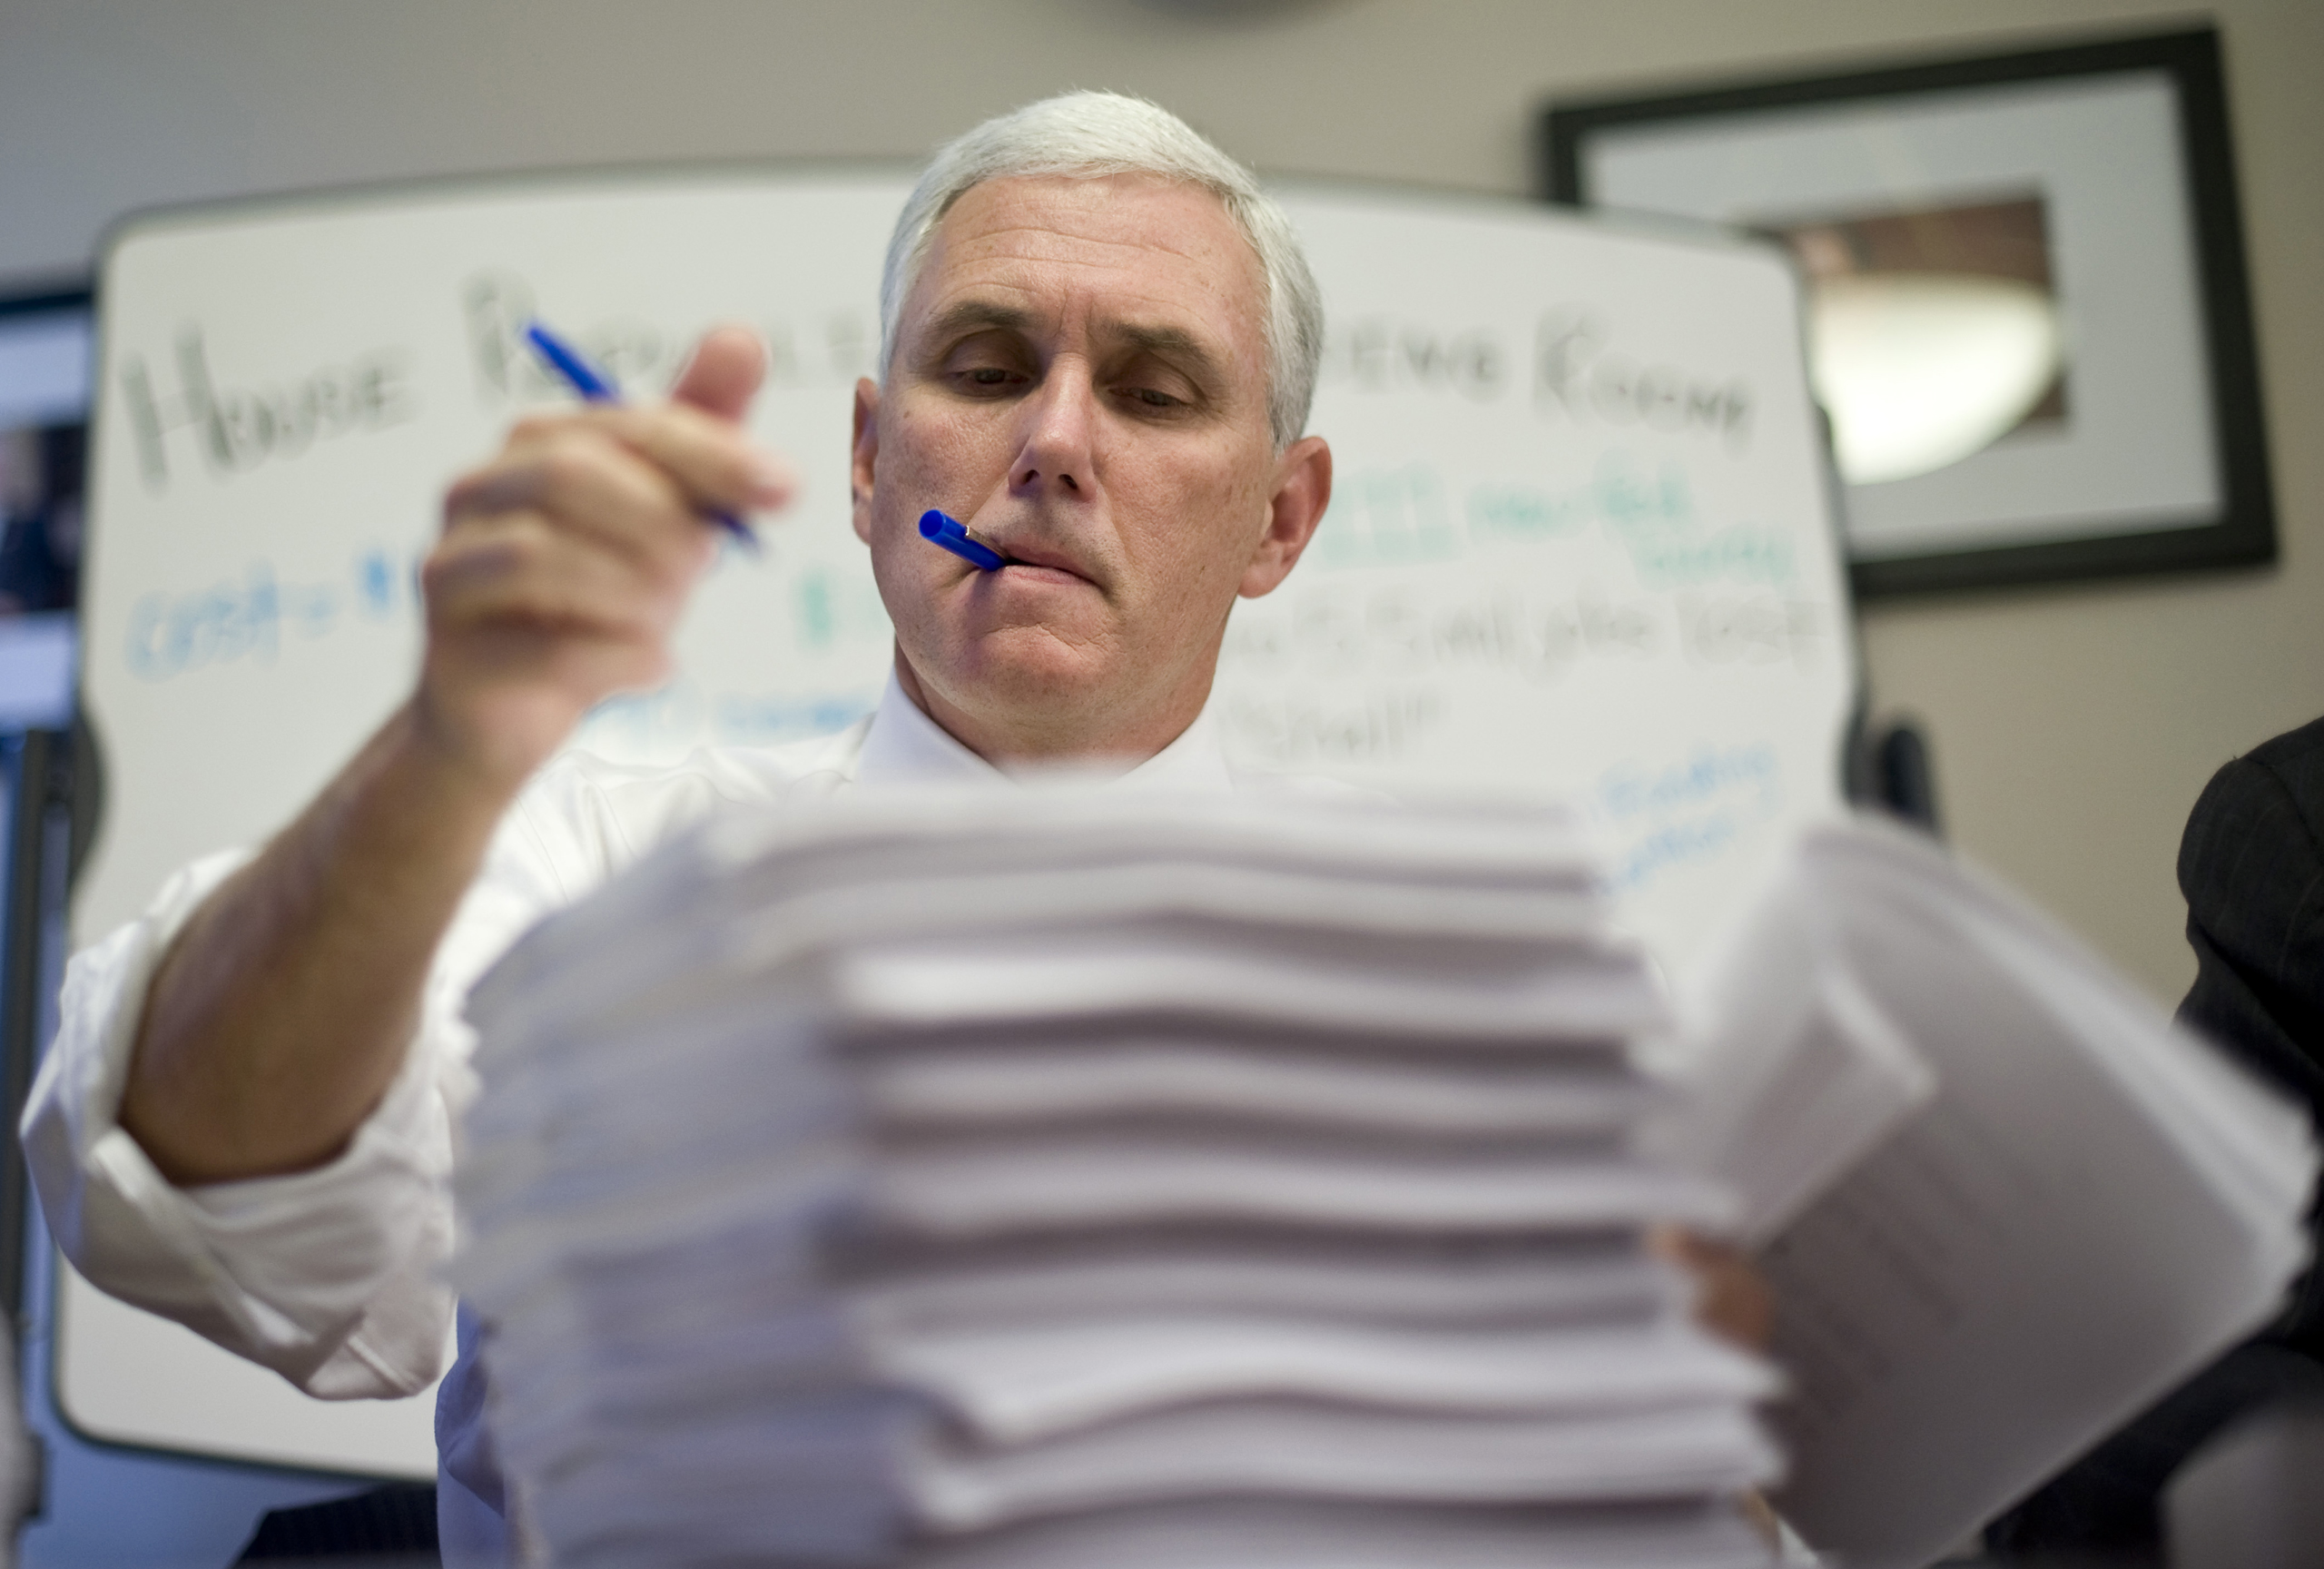 Rep. Mike Pence, R-Ind., makes marks on the House health care bill as House Republicans gathered in the House Republicans Reading Room in the Longworth House Office Building on Nov. 3, 2009.